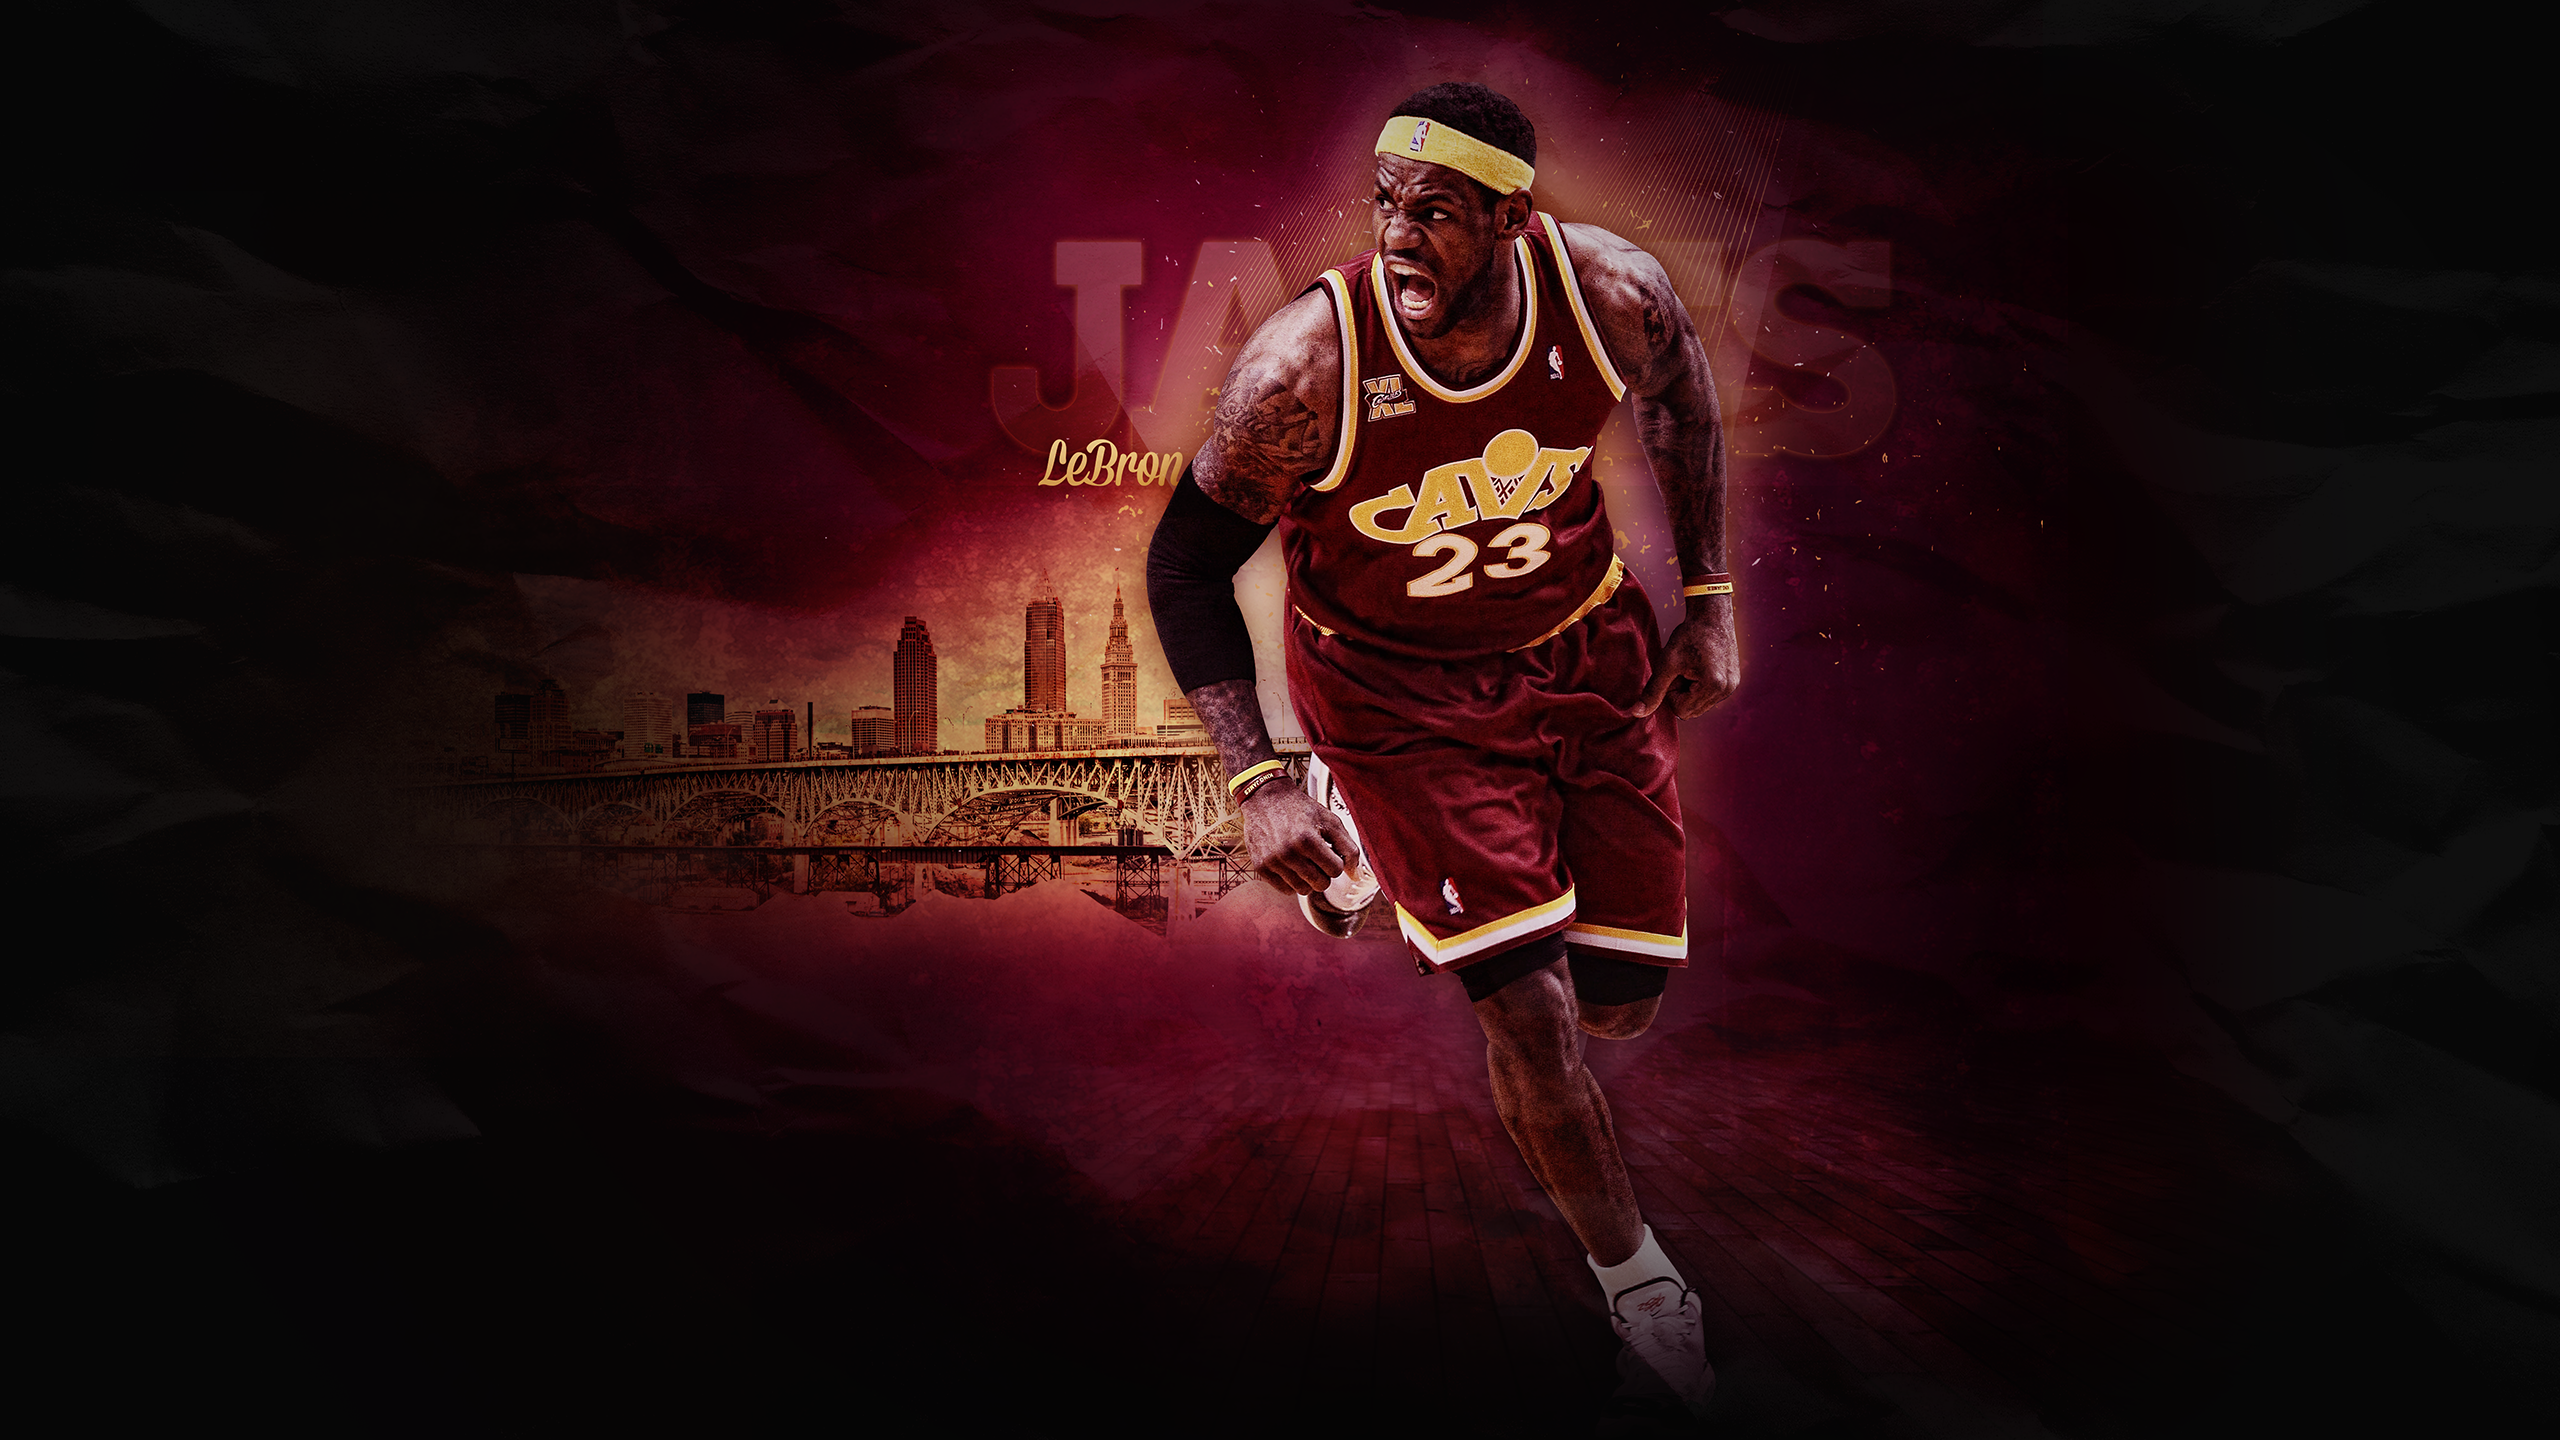 Lebron James Photos, NVA85 Collection